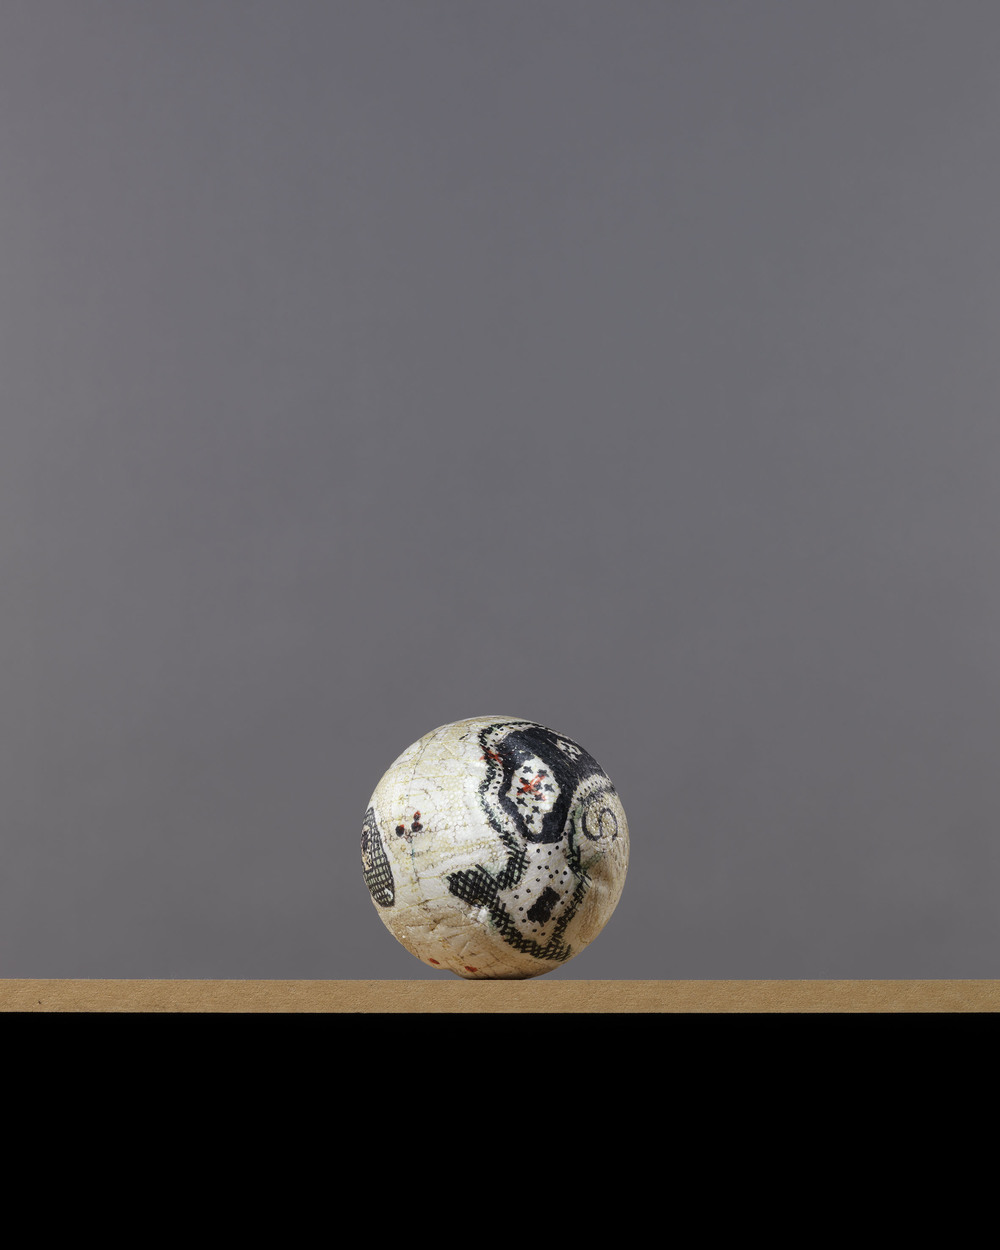 DEBRA PHILLIPS, Polystyrene ball, grey, 2012.